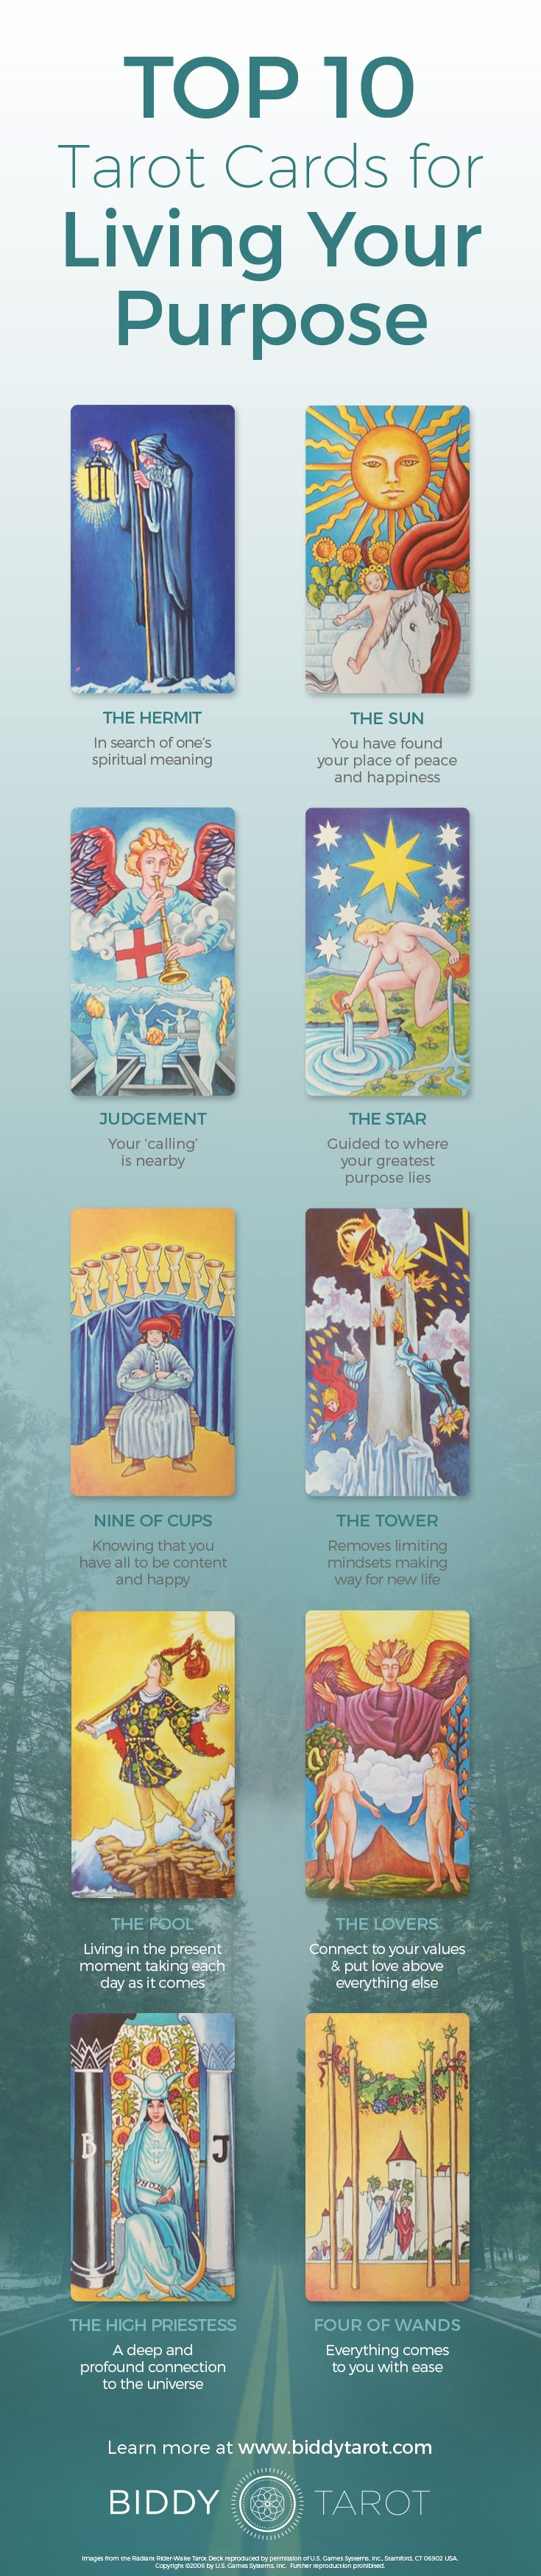 It's a wonderful feeling to be in tune with the #universe! When these #Tarot cards appear in a reading, you're on the path to living your #Life #Purpose to the fullest! Download your free copy of my Top 10 Tarot Cards for love, finances, career, life purpose and so much more at https://www.biddytarot.com/top-ten-cards-ebook/ It's my gift to you!